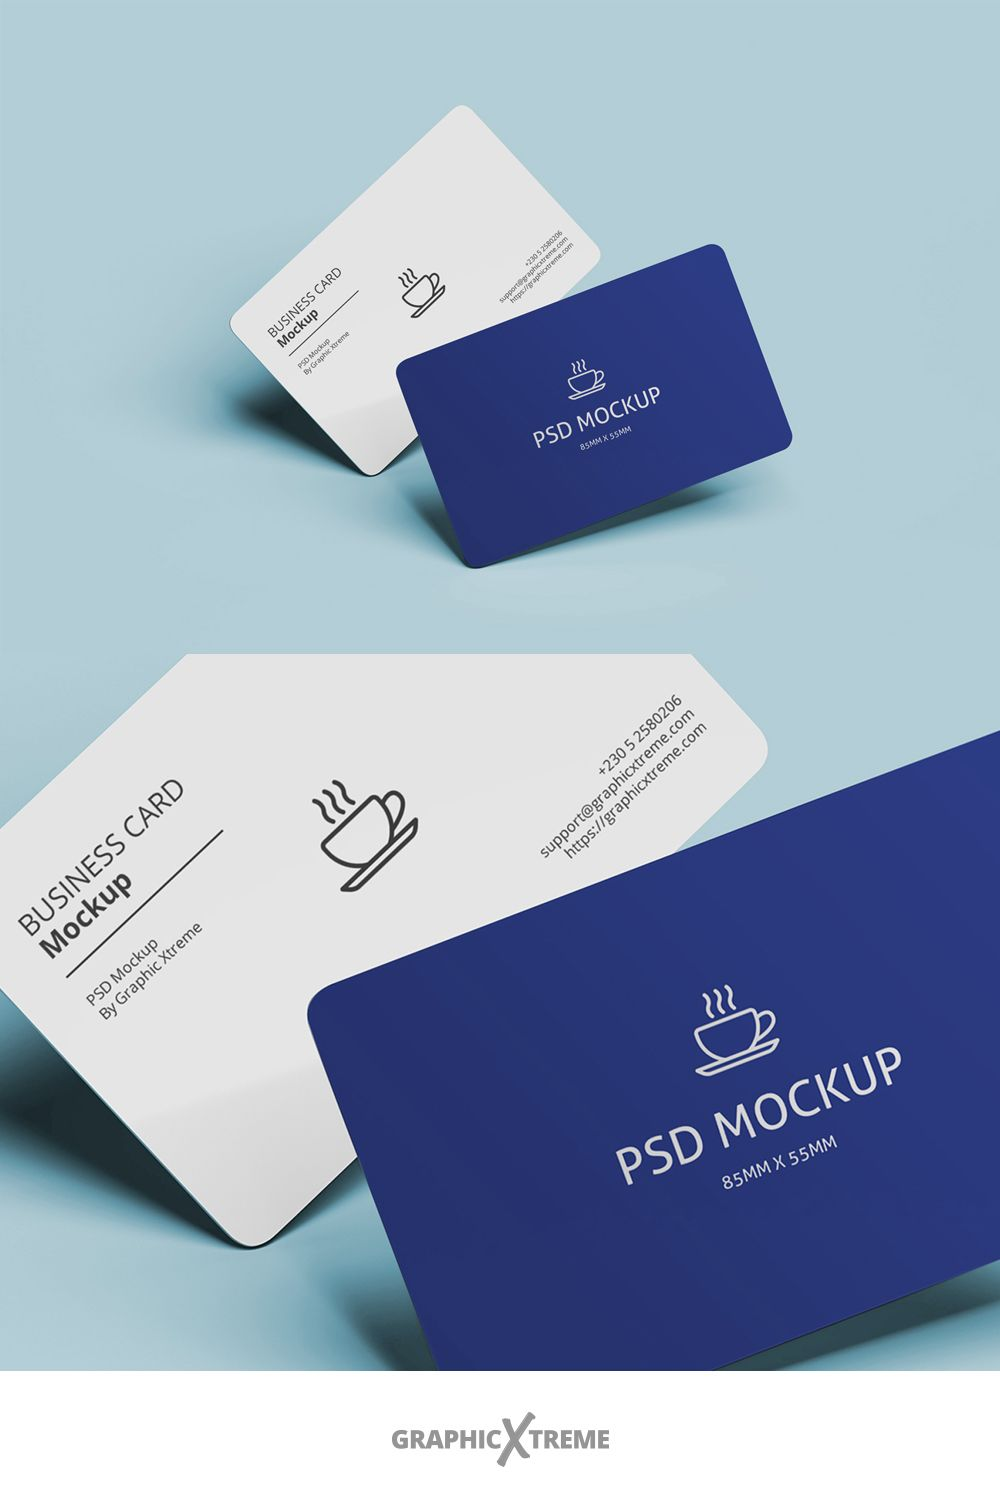 Rounded Business Card Mockup Business Card Mock Up Business Cards Mockup Psd Round Business Cards